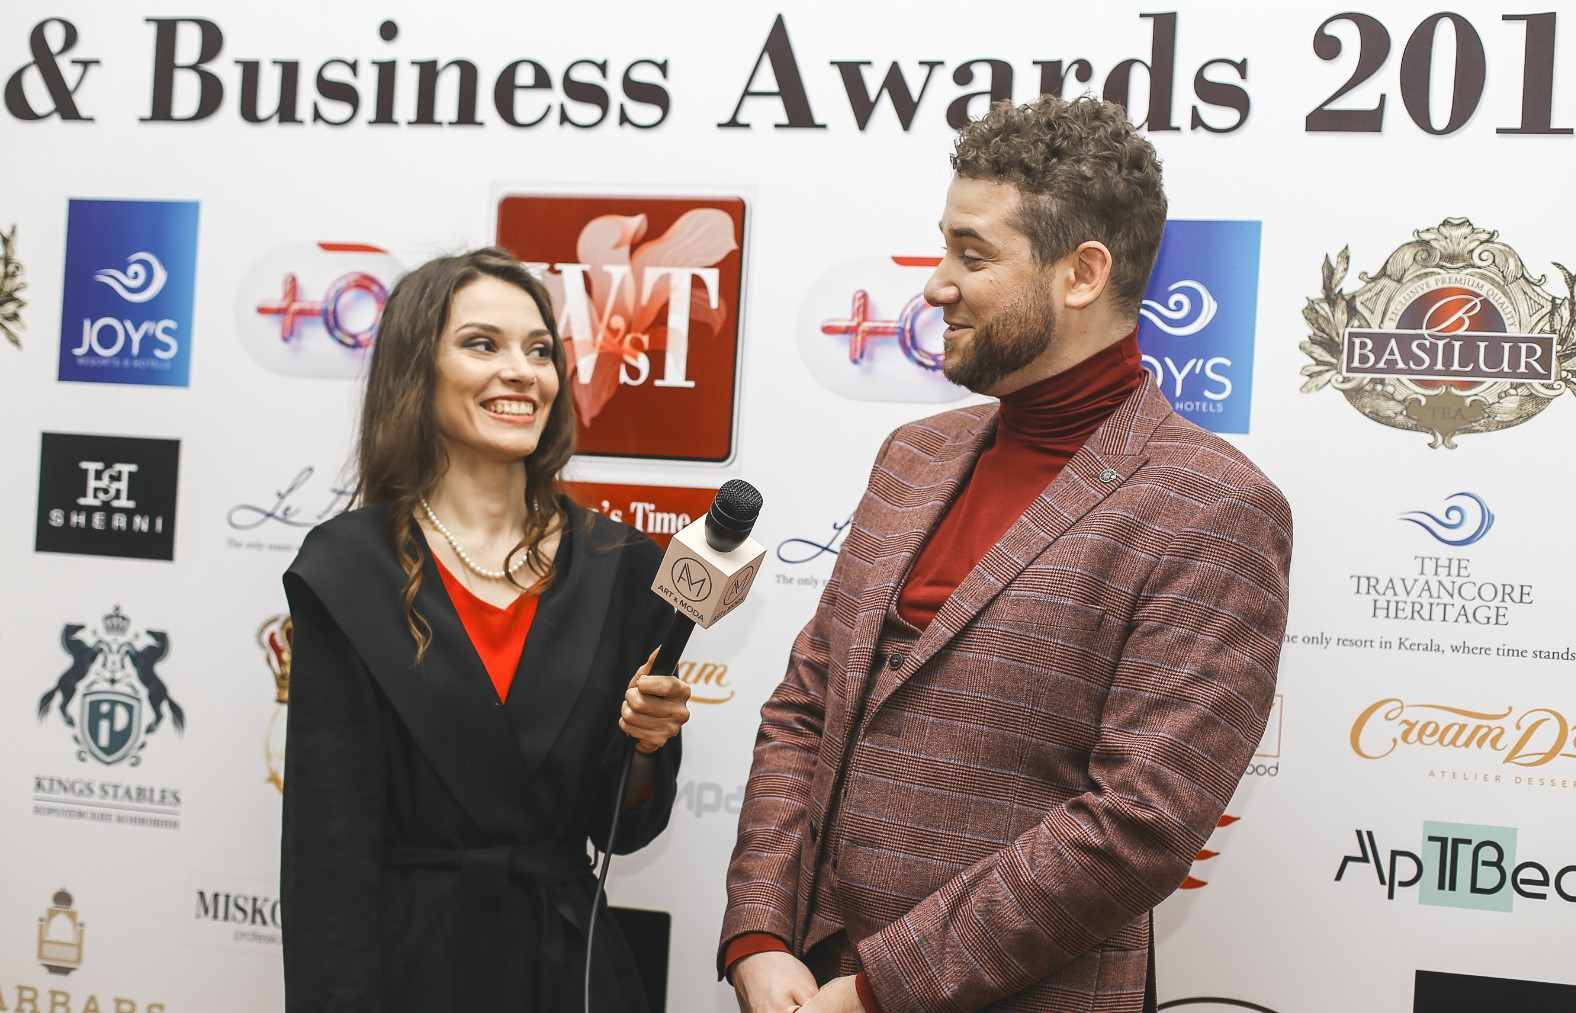 vladimir-brilev-art-business-awards-2019-womenstime